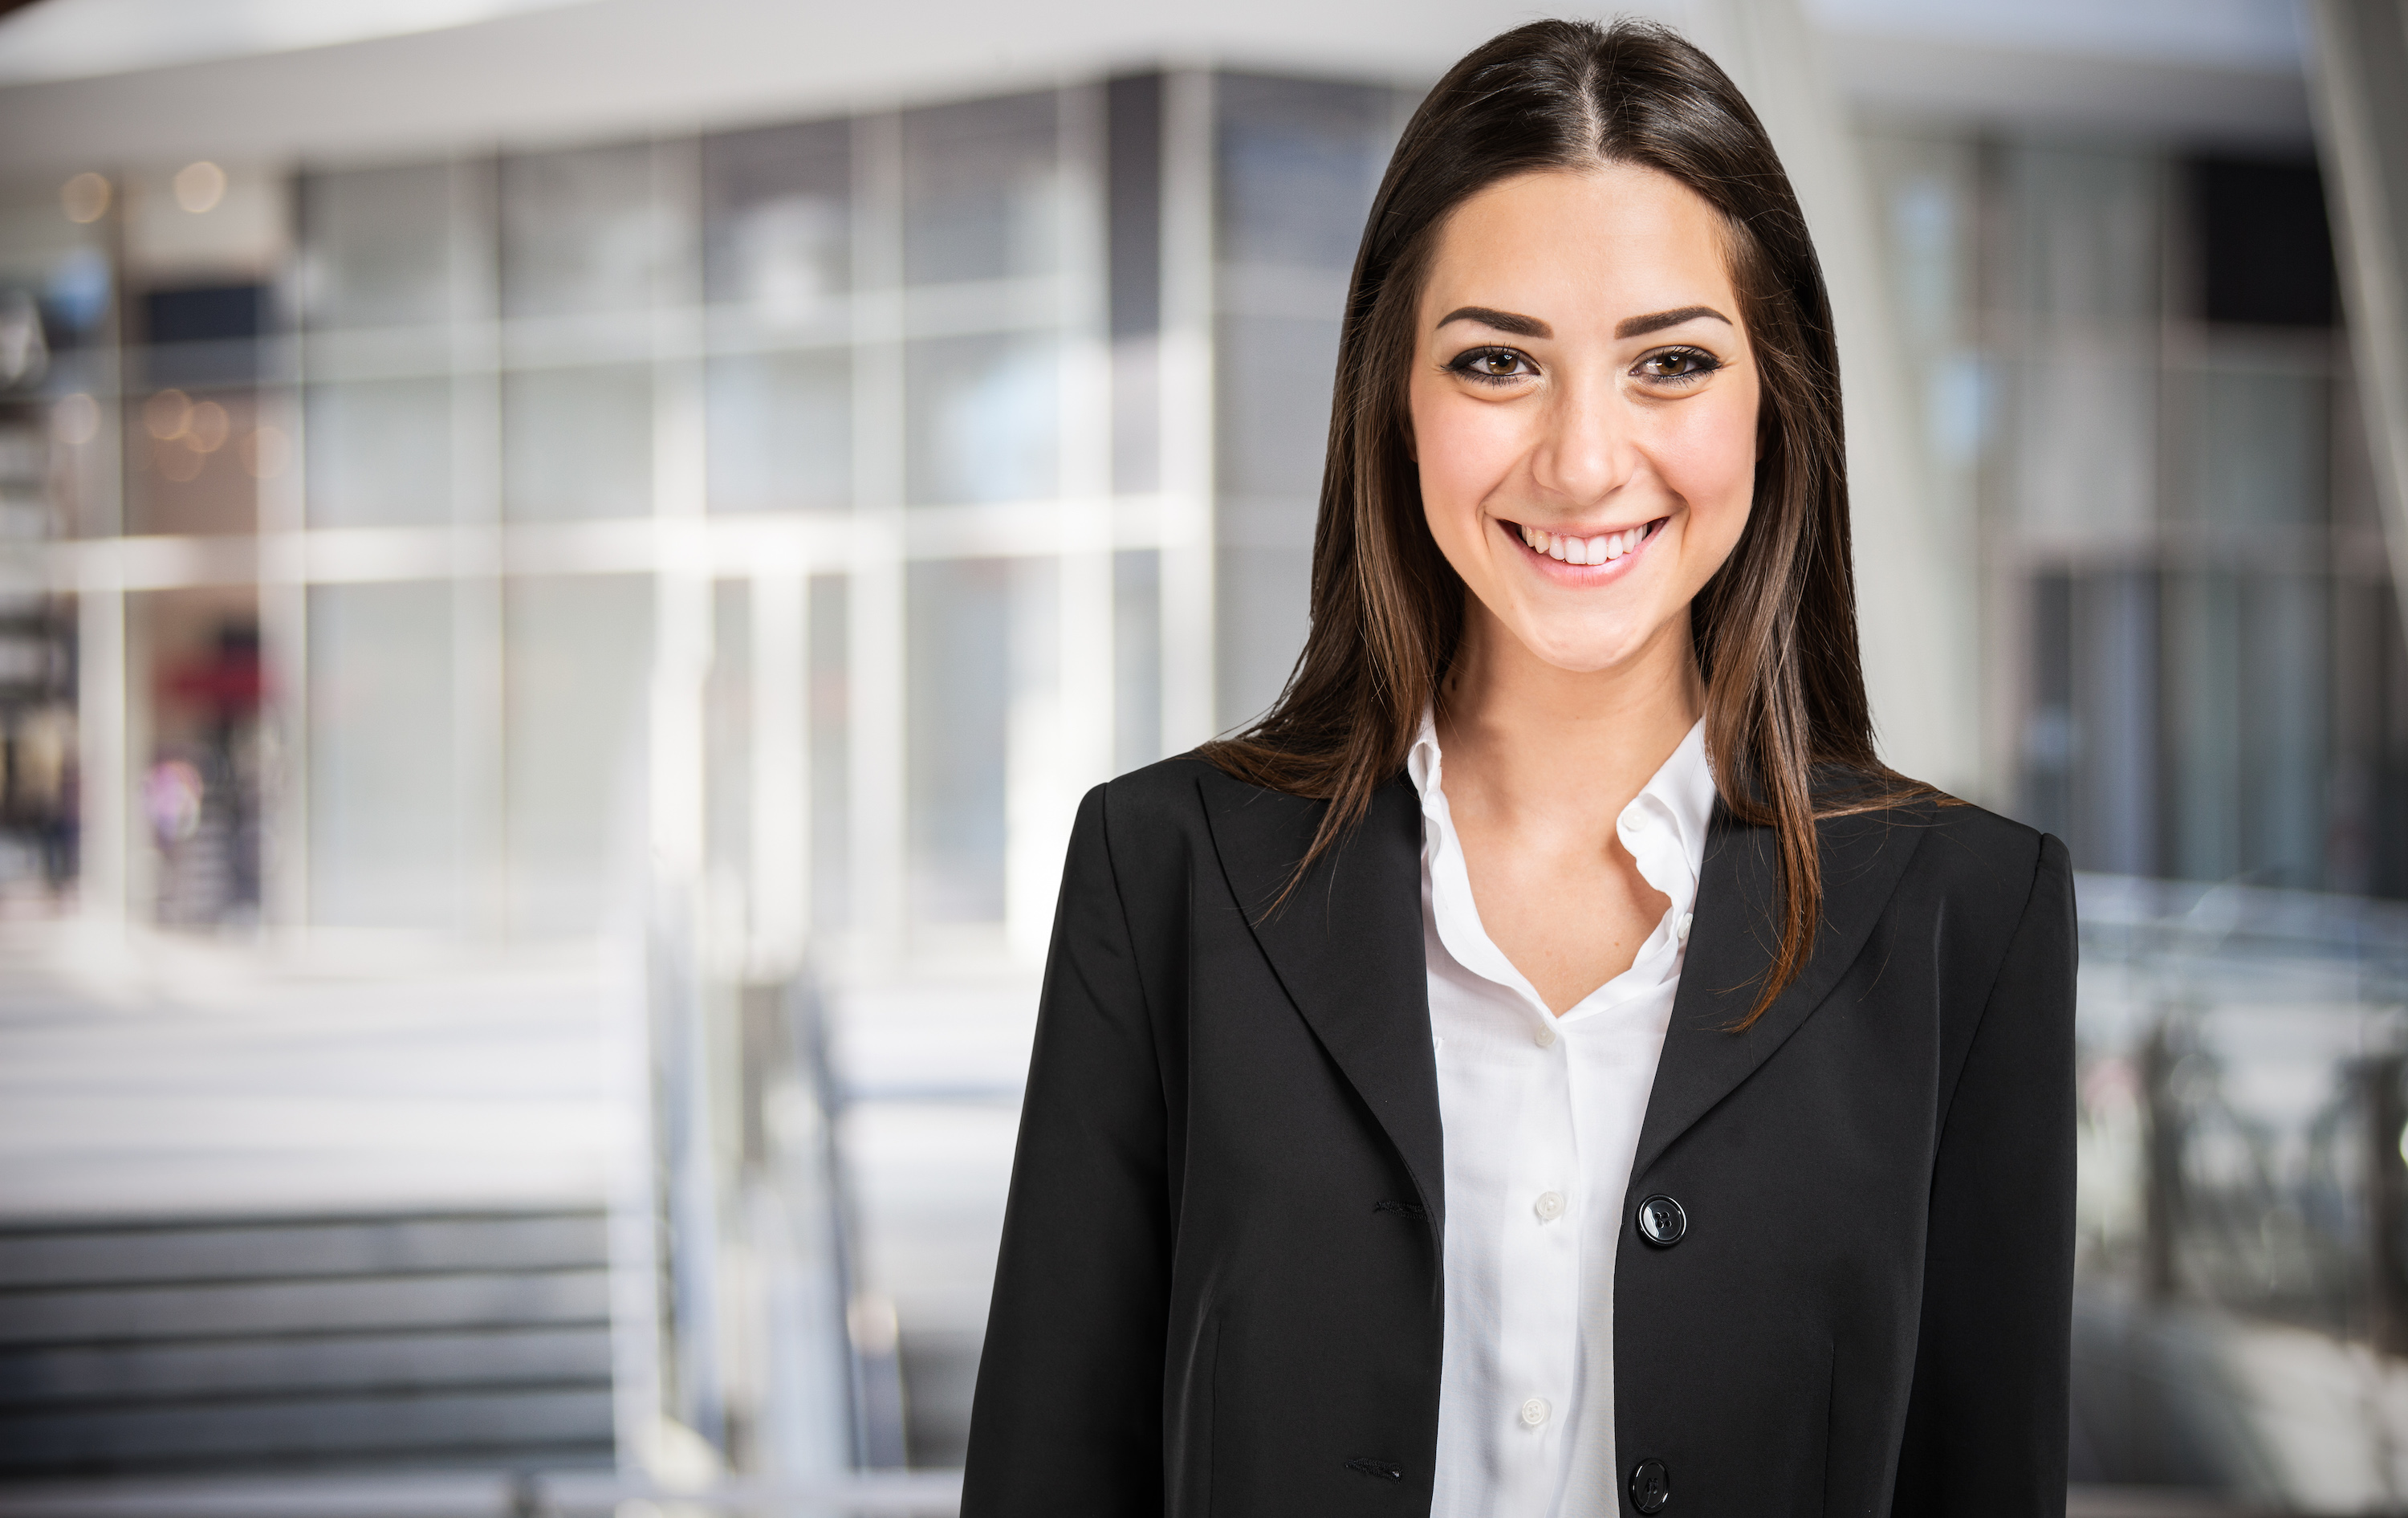 Young business woman in office environment looking at camera in black suit